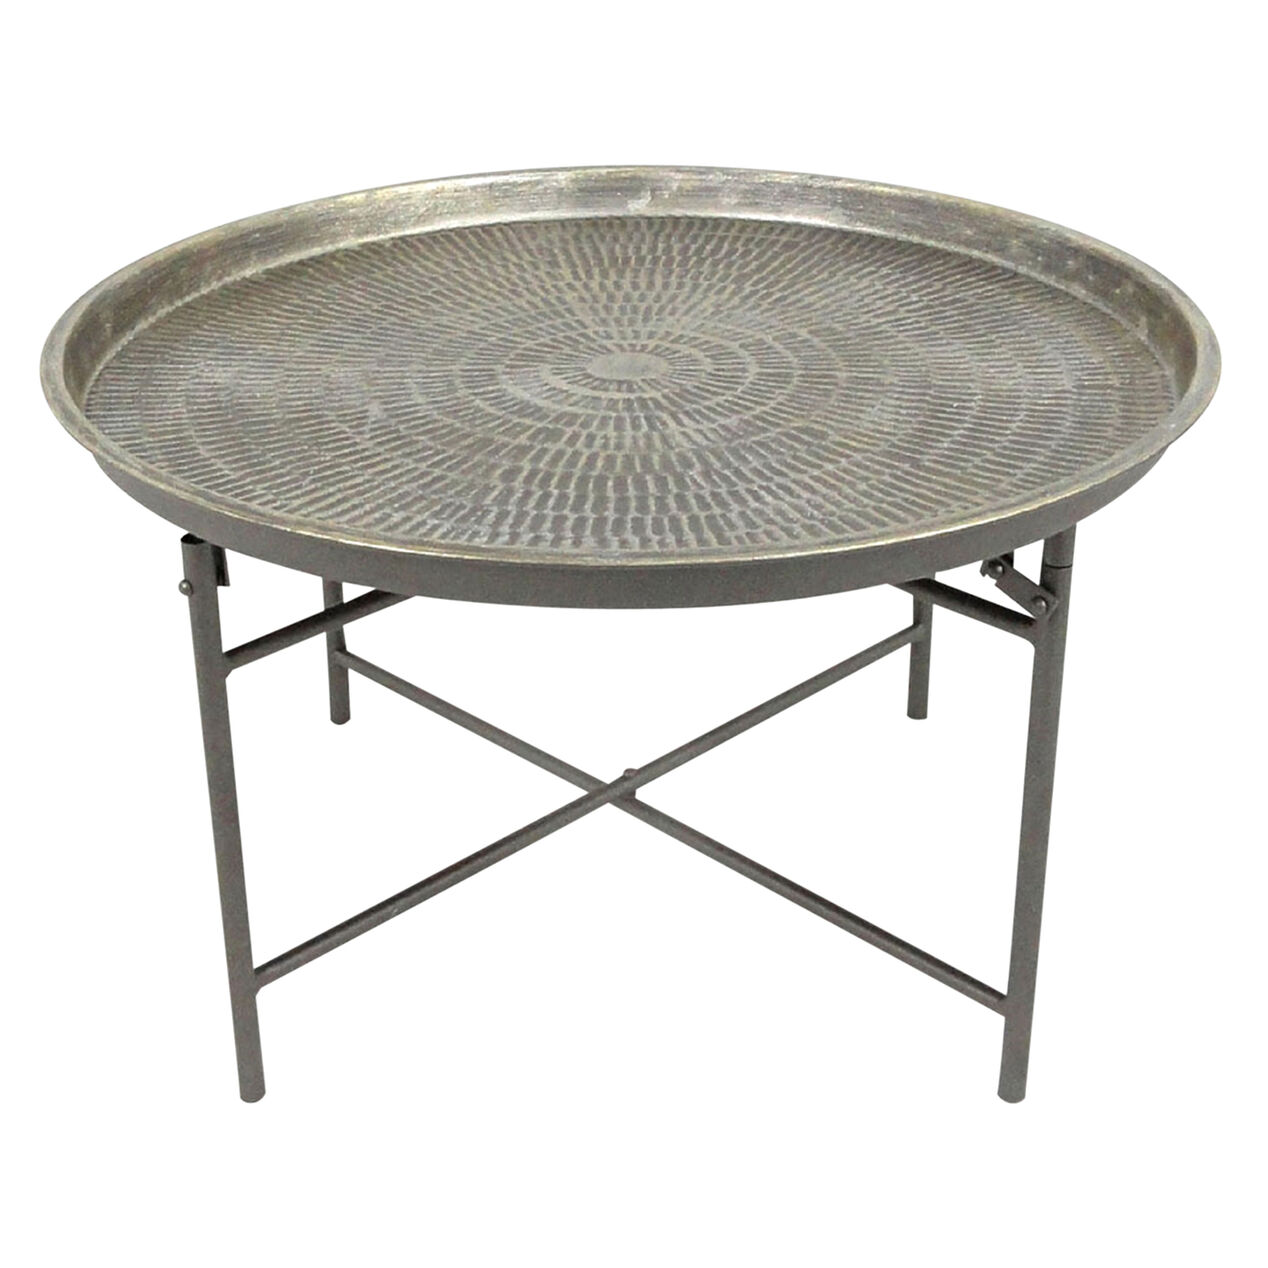 round metal coffee table - at home